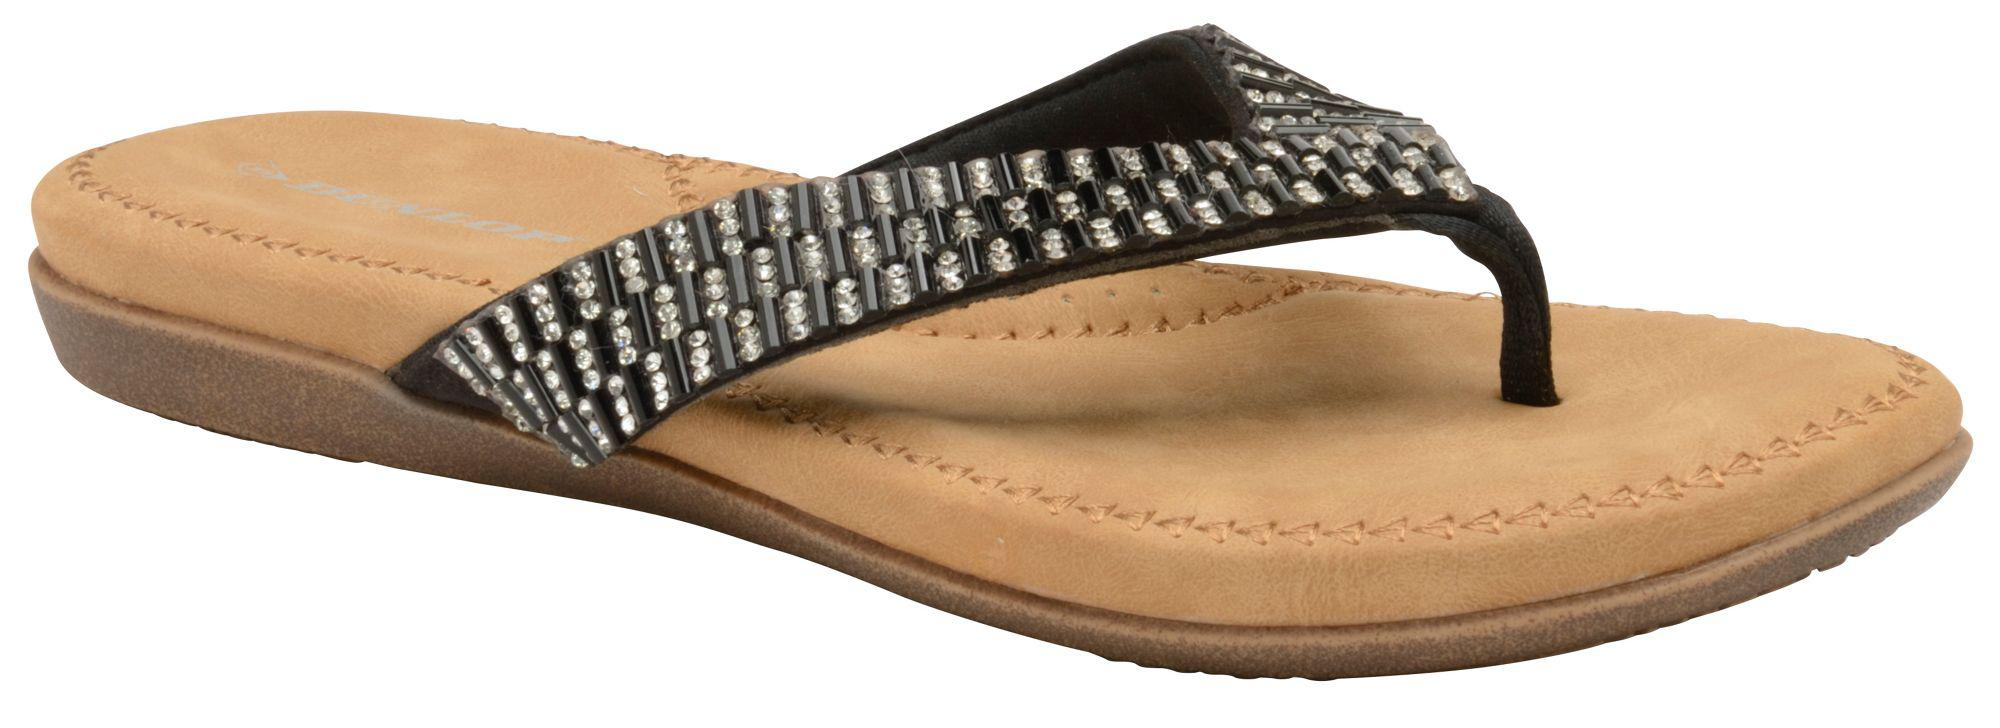 2e79b0b7c816 Dunlop Black  lucia  Ladies Toe Post Slippers in Black - Lyst